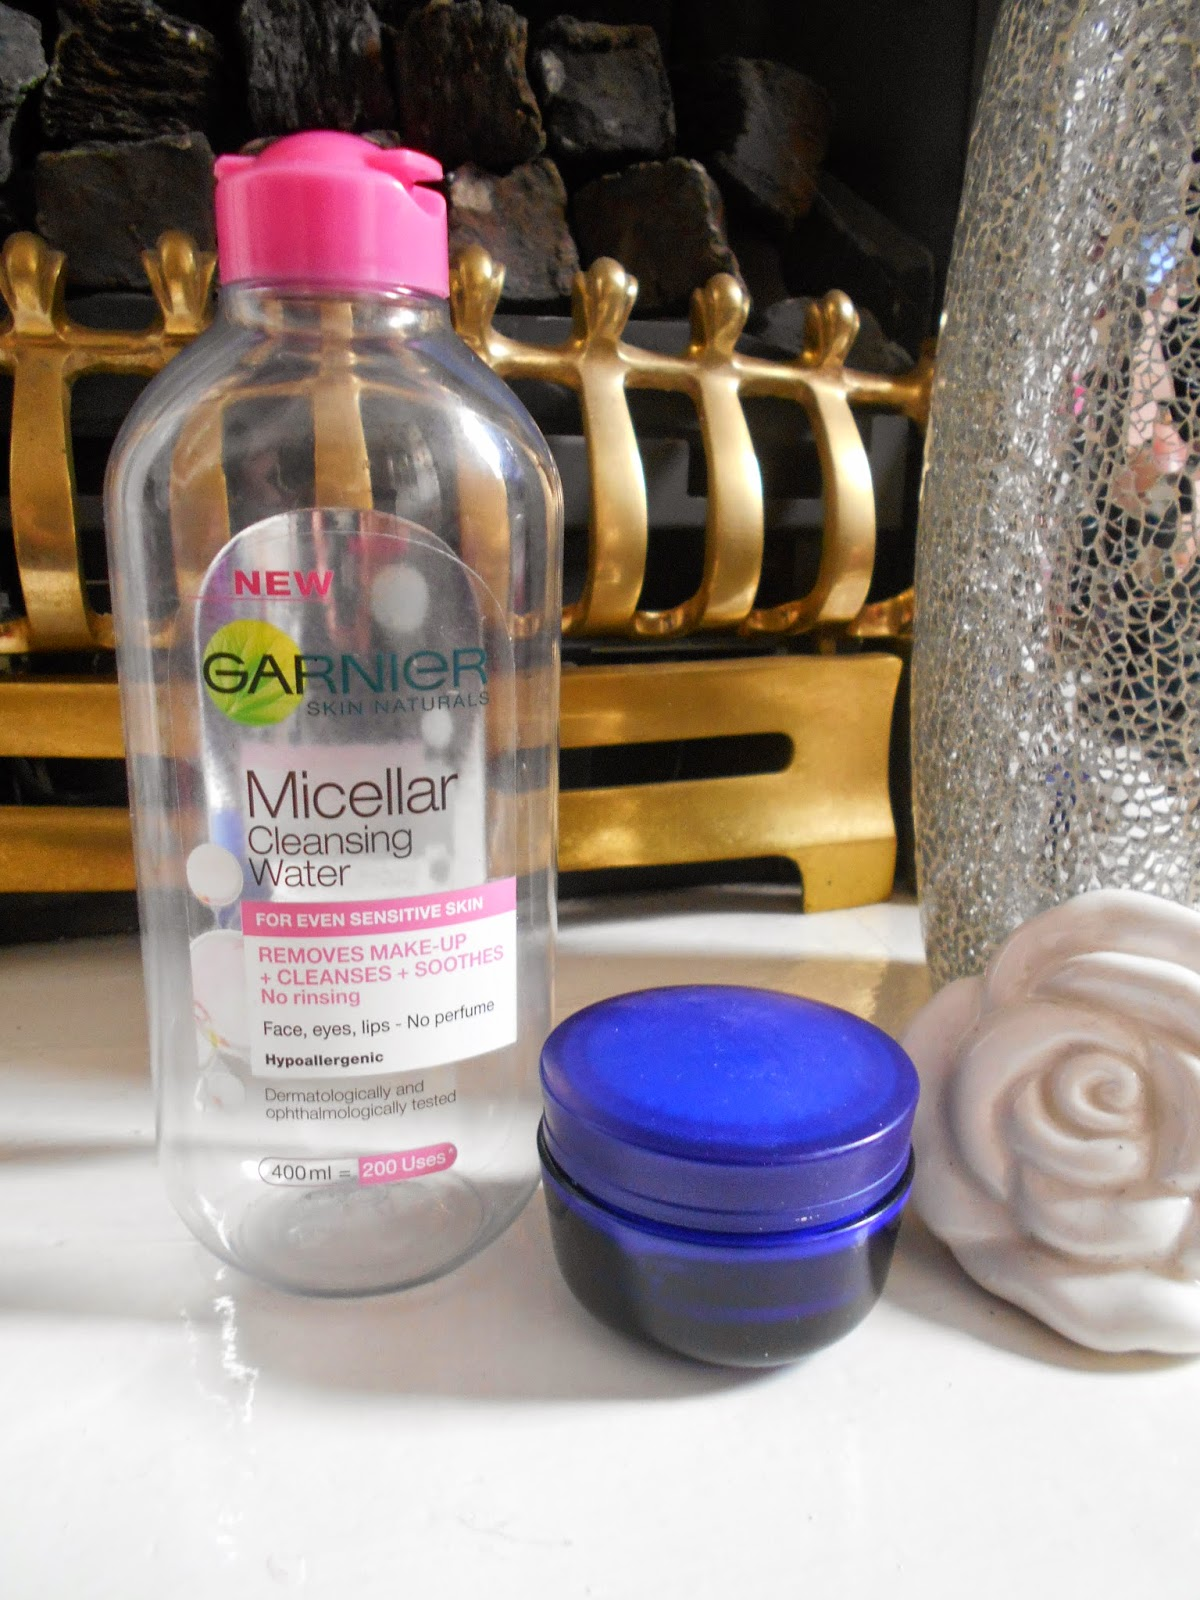 Garnier Micellar Cleansing Water and Nivea Night Cream